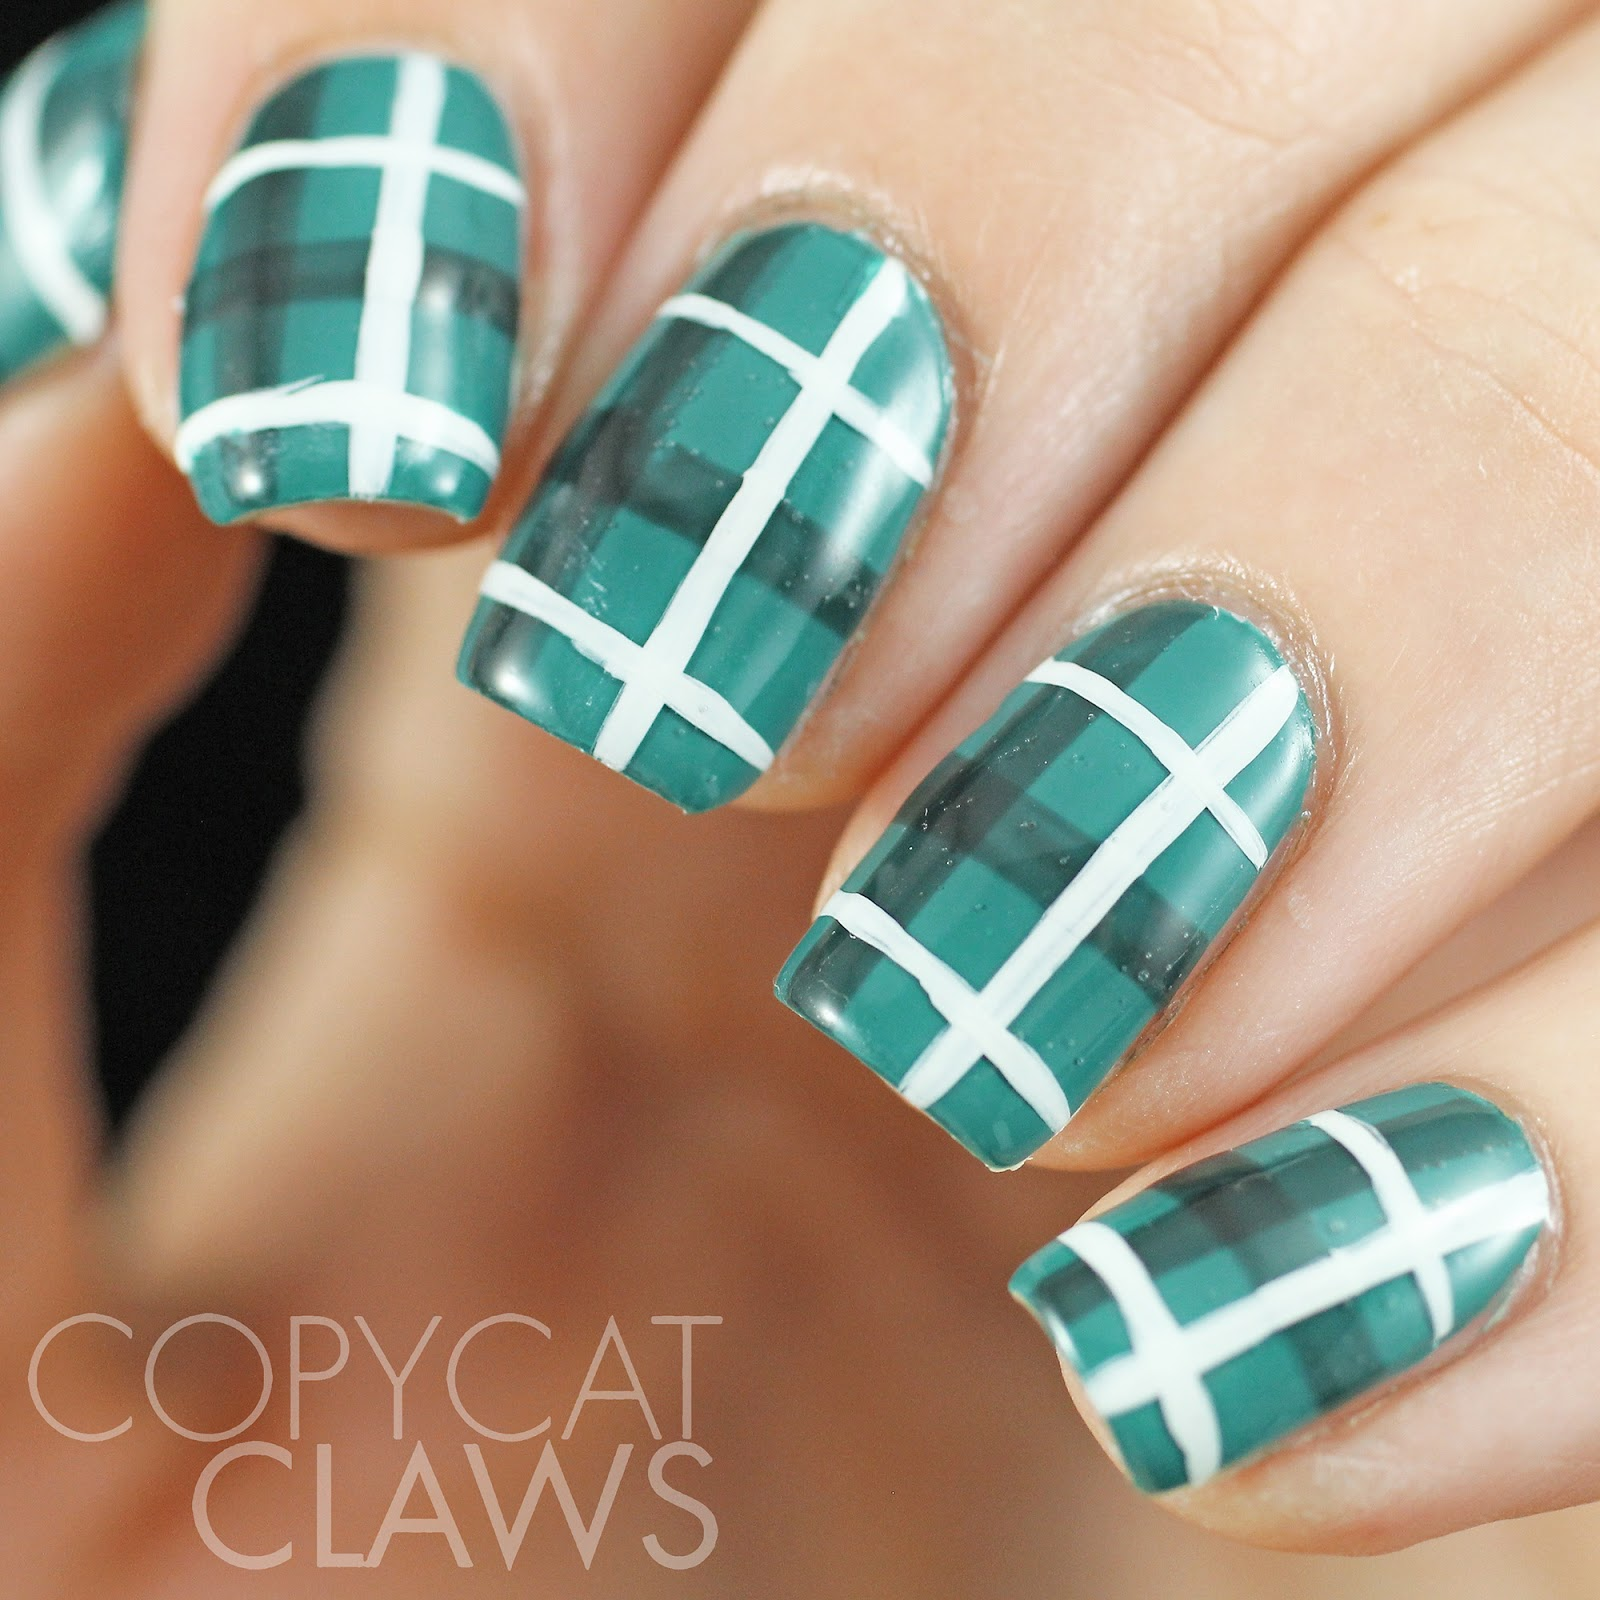 Copycat Claws 40 Great Nail Art Ideas Teal